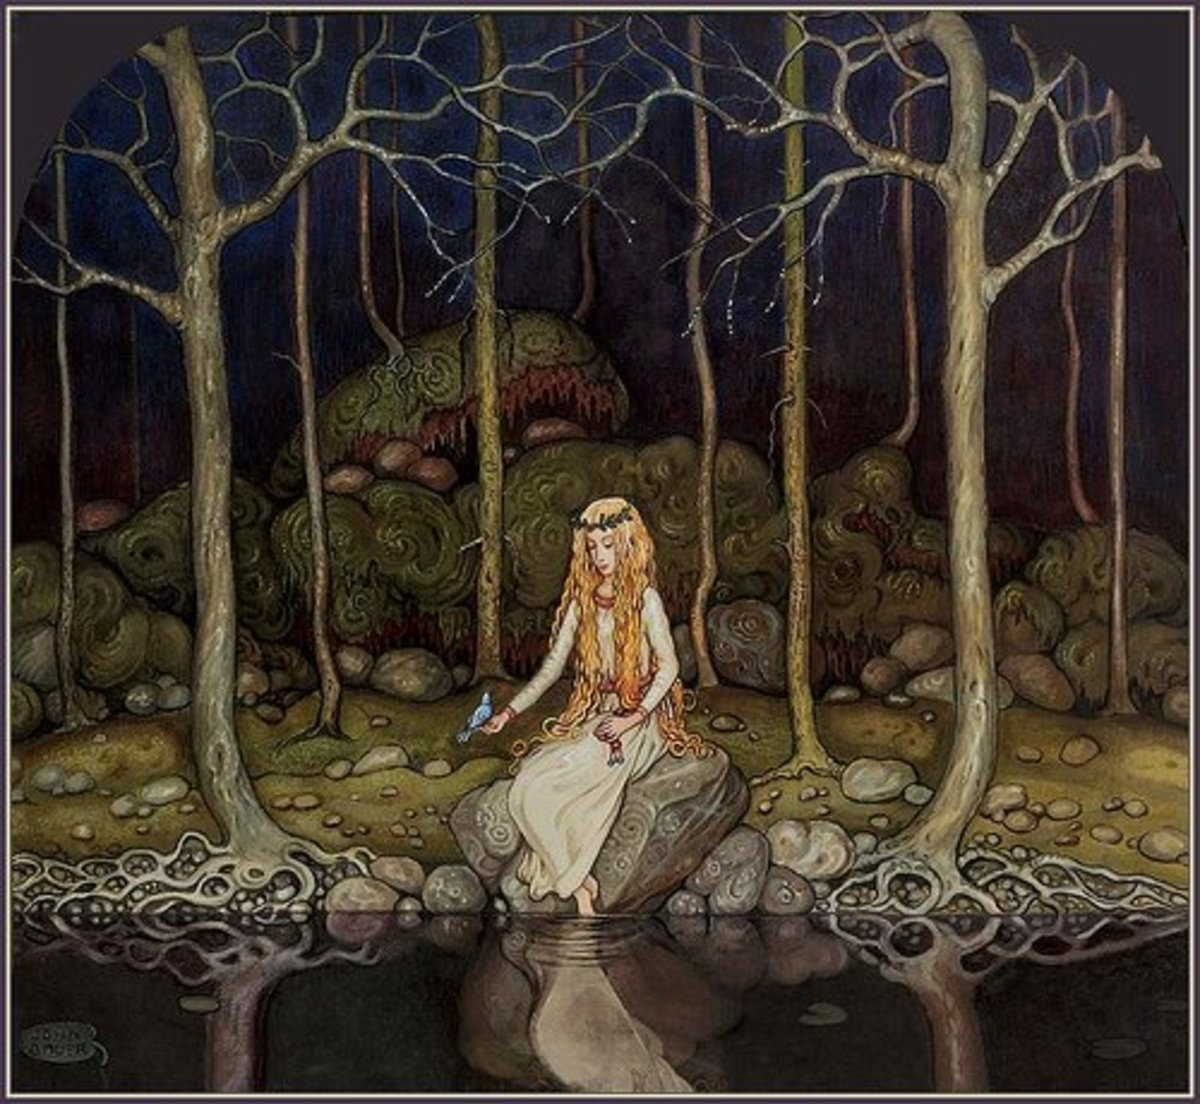 Nature Spirits: Elves and Fairies of the Forest